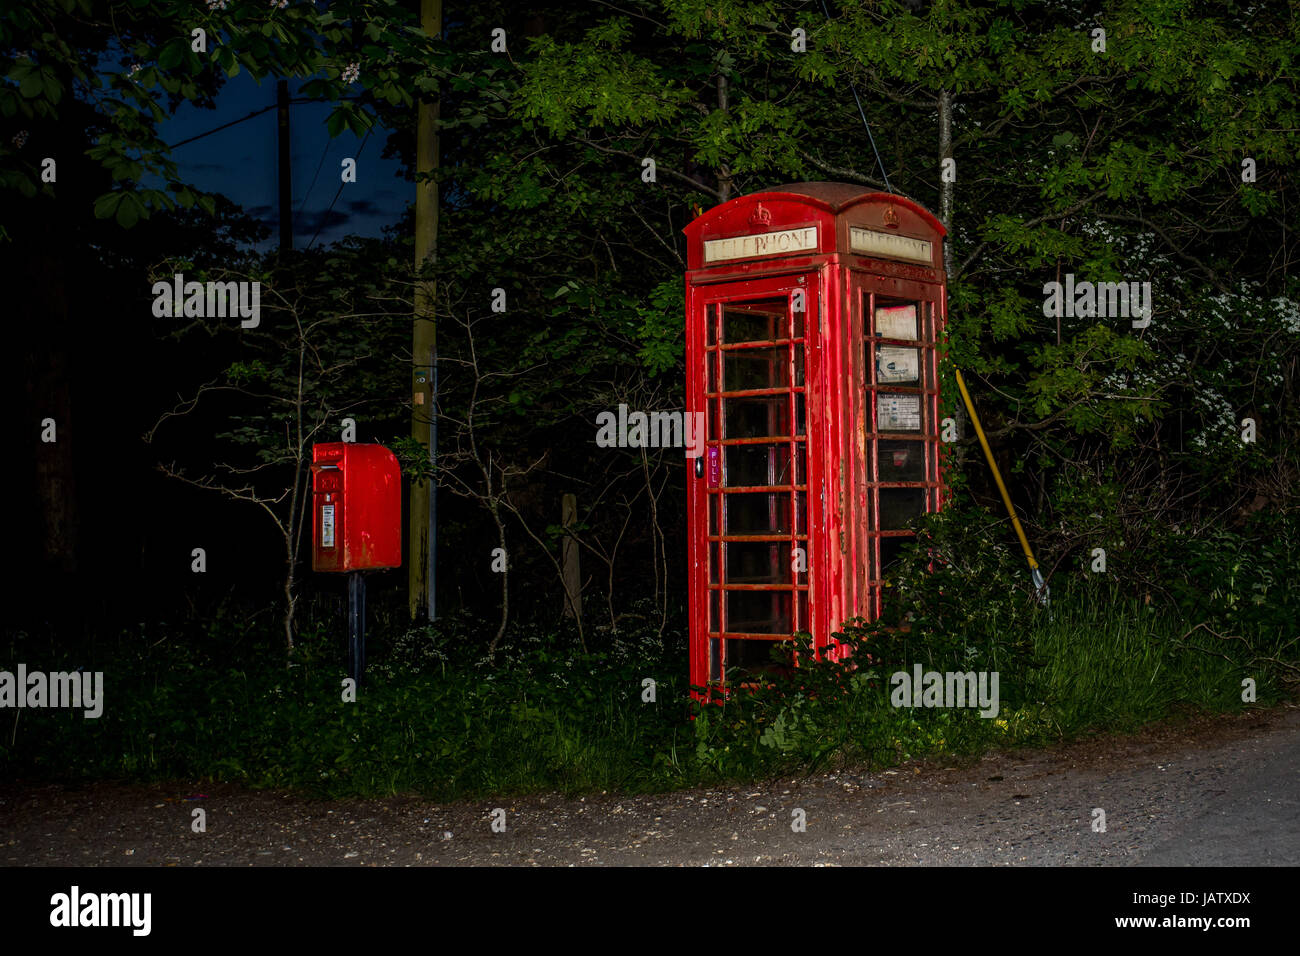 red telephone box in forest in england at night Stock Photo